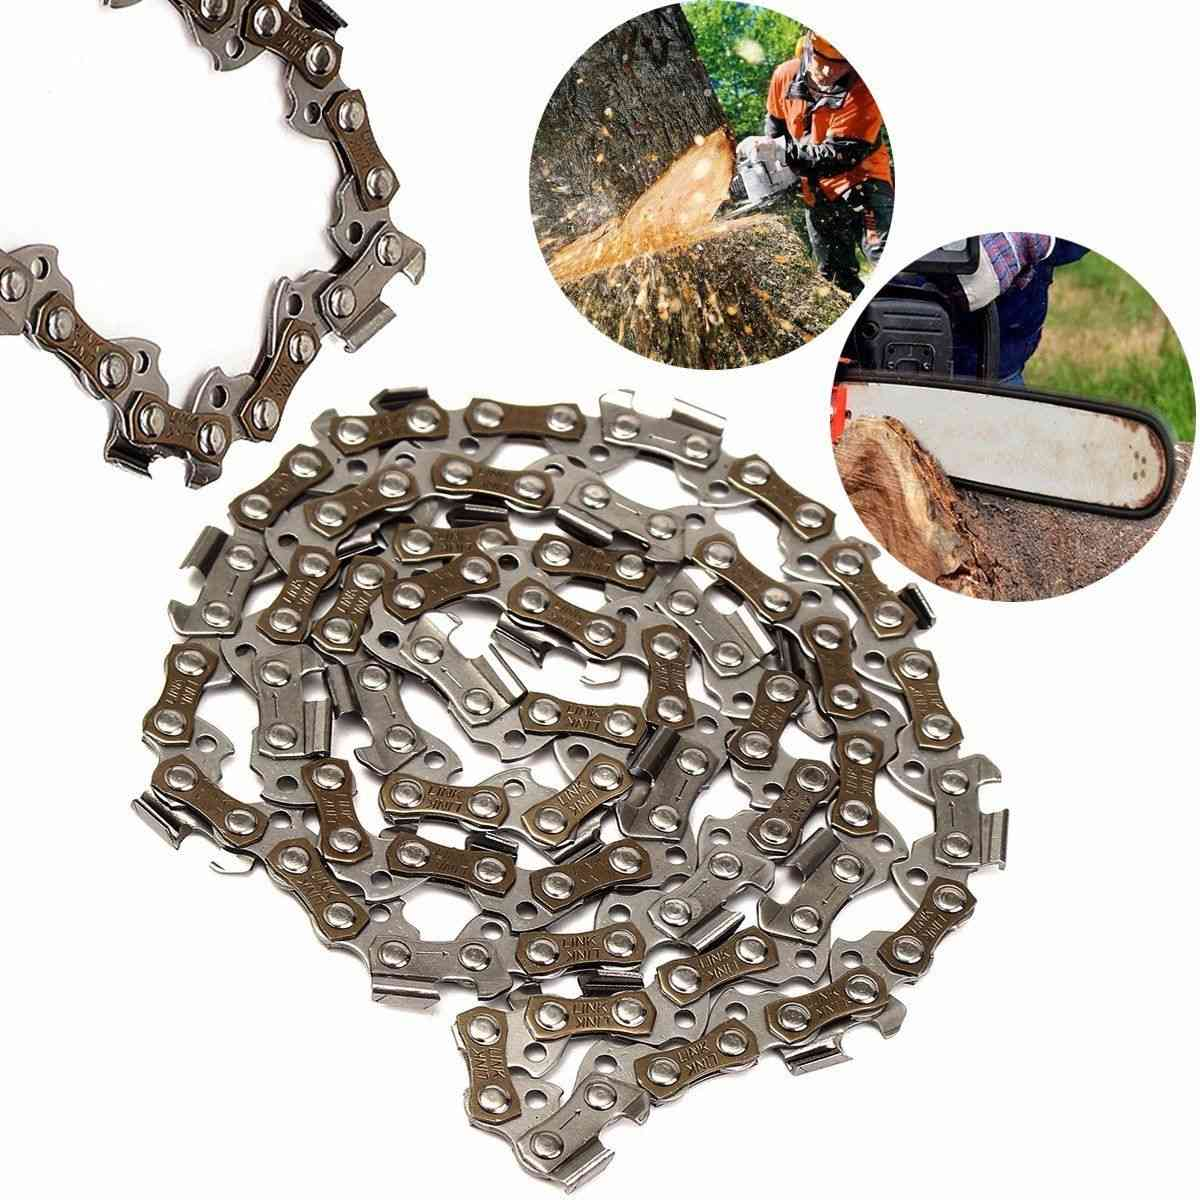 Mill Substitution Blade Wood Cutting Chainsaw Chain Blade